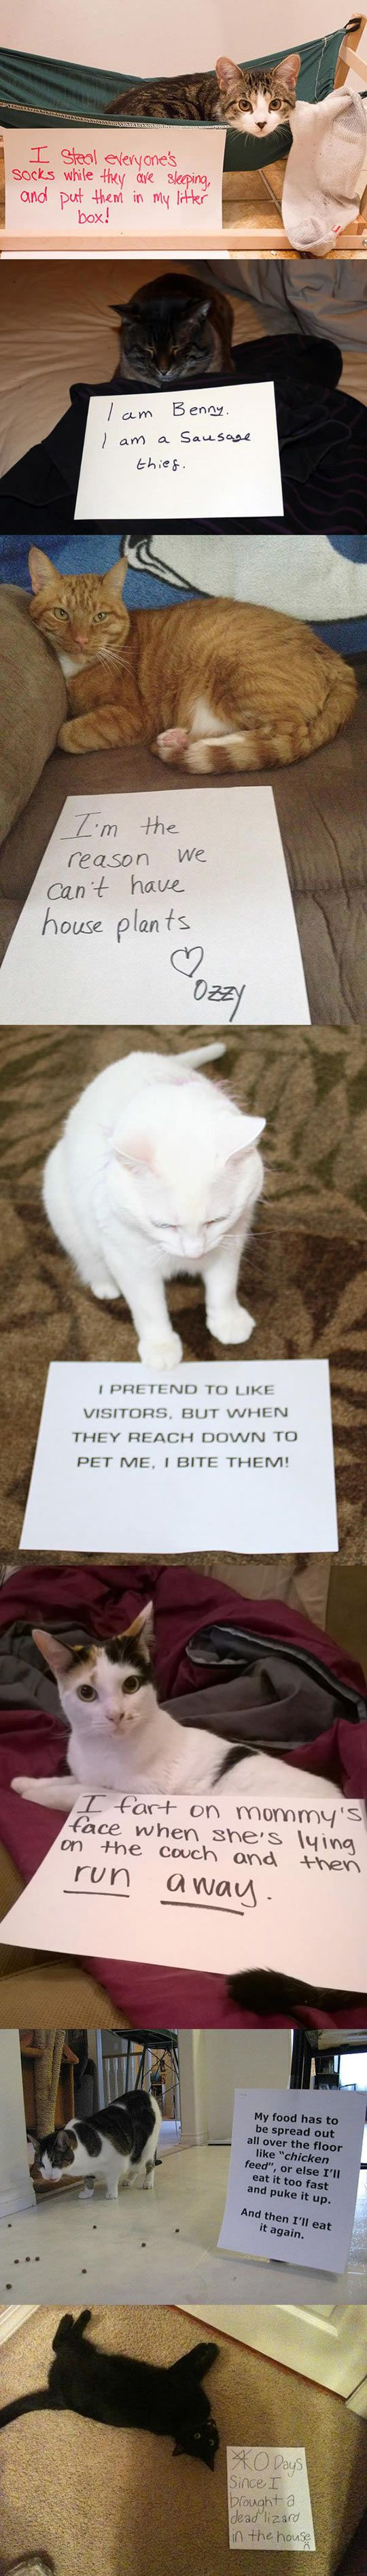 OMFG........the farting cat one on the cat shaming on page 30 of geekfill is what had me rolling